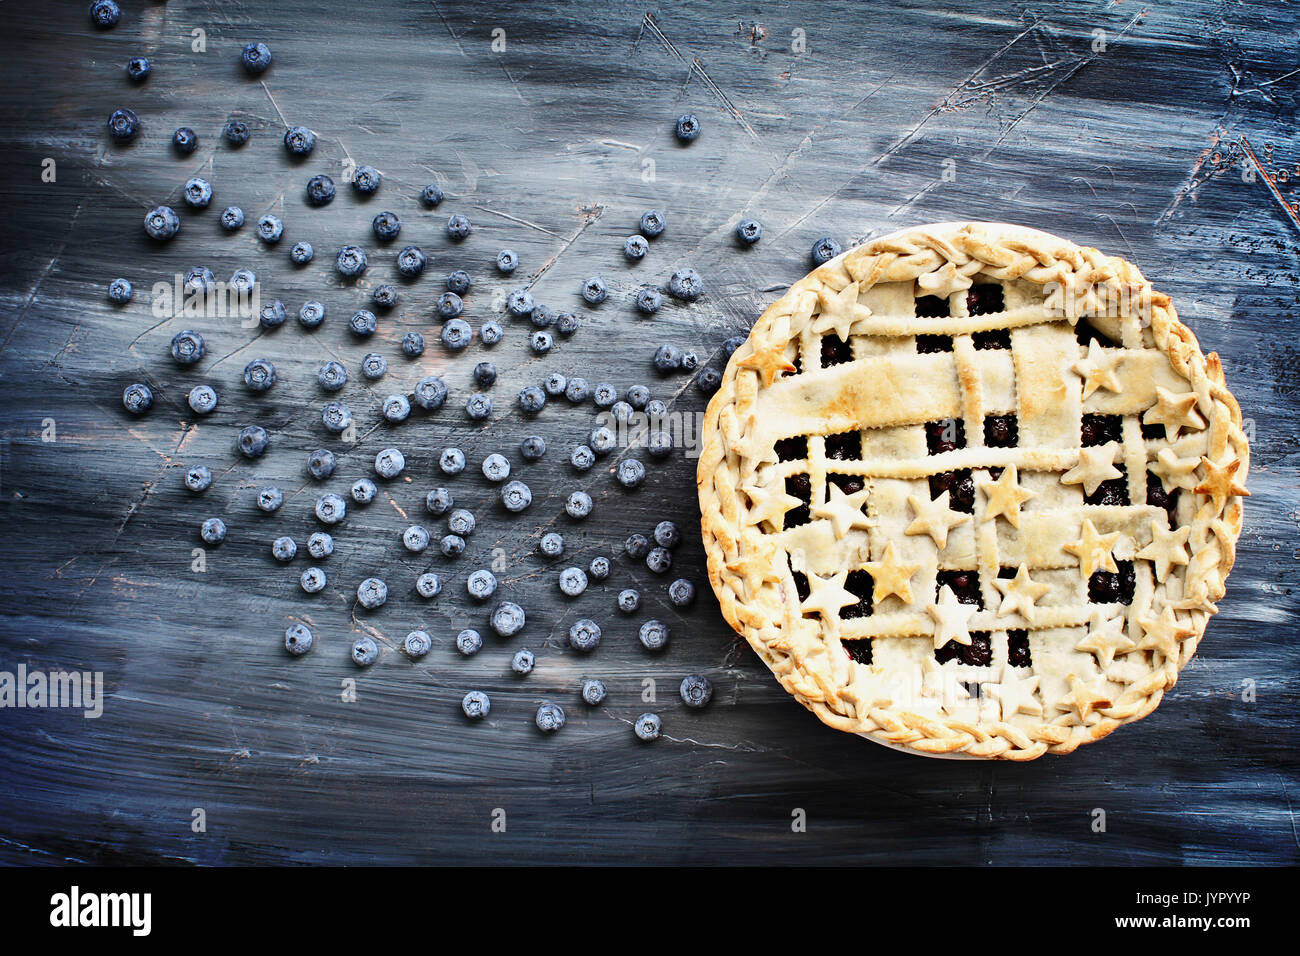 Top view of a blueberry pie with lattice and stars crust and fresh berries scattered across artistic wooden background. - Stock Image